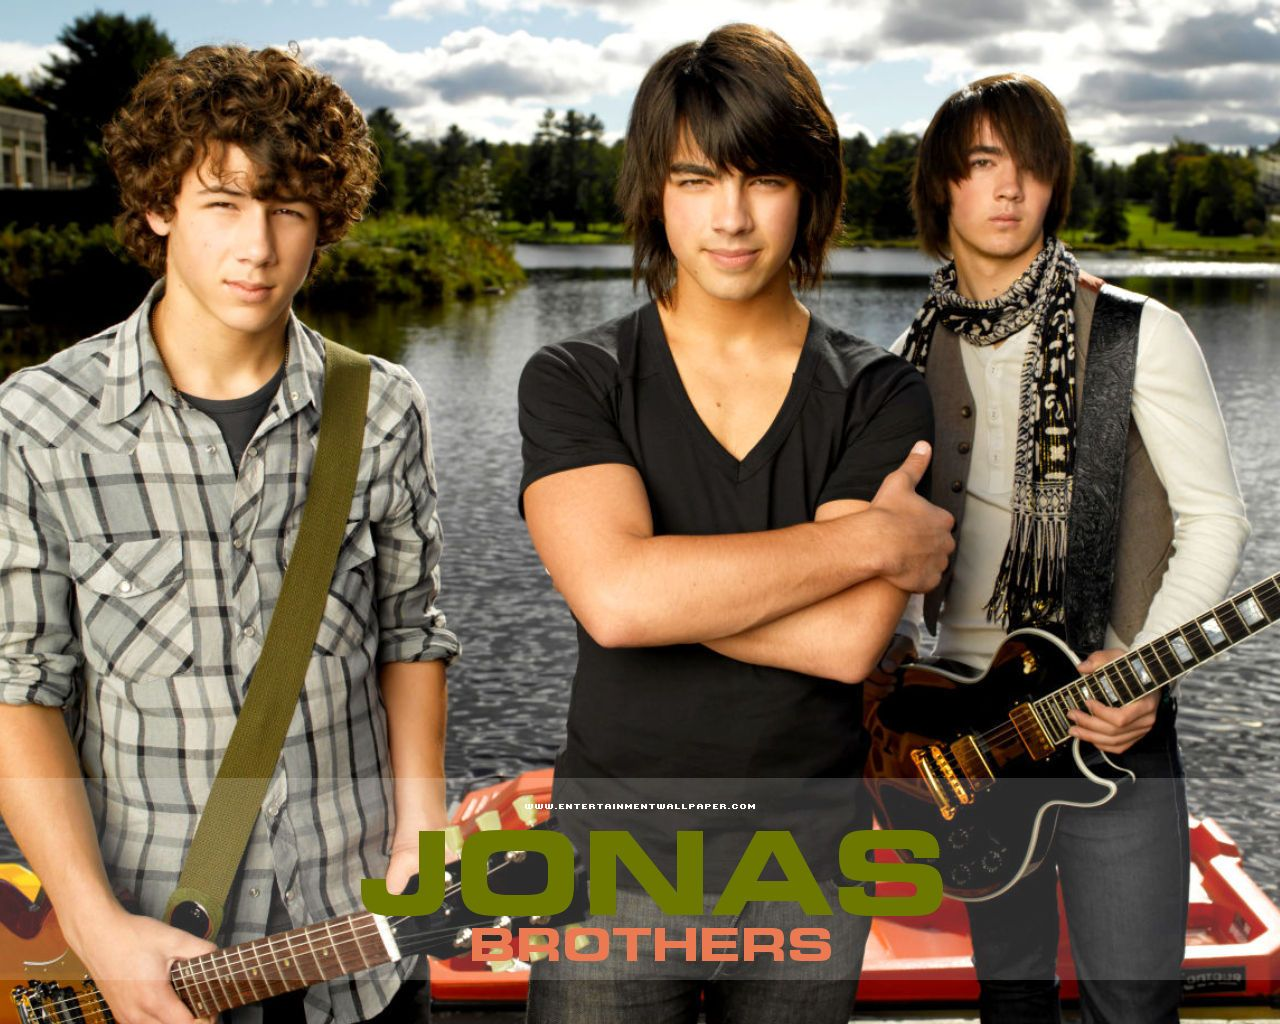 Jonas Brothers Wallpaper - #40017353 (1280x1024) | Desktop ...